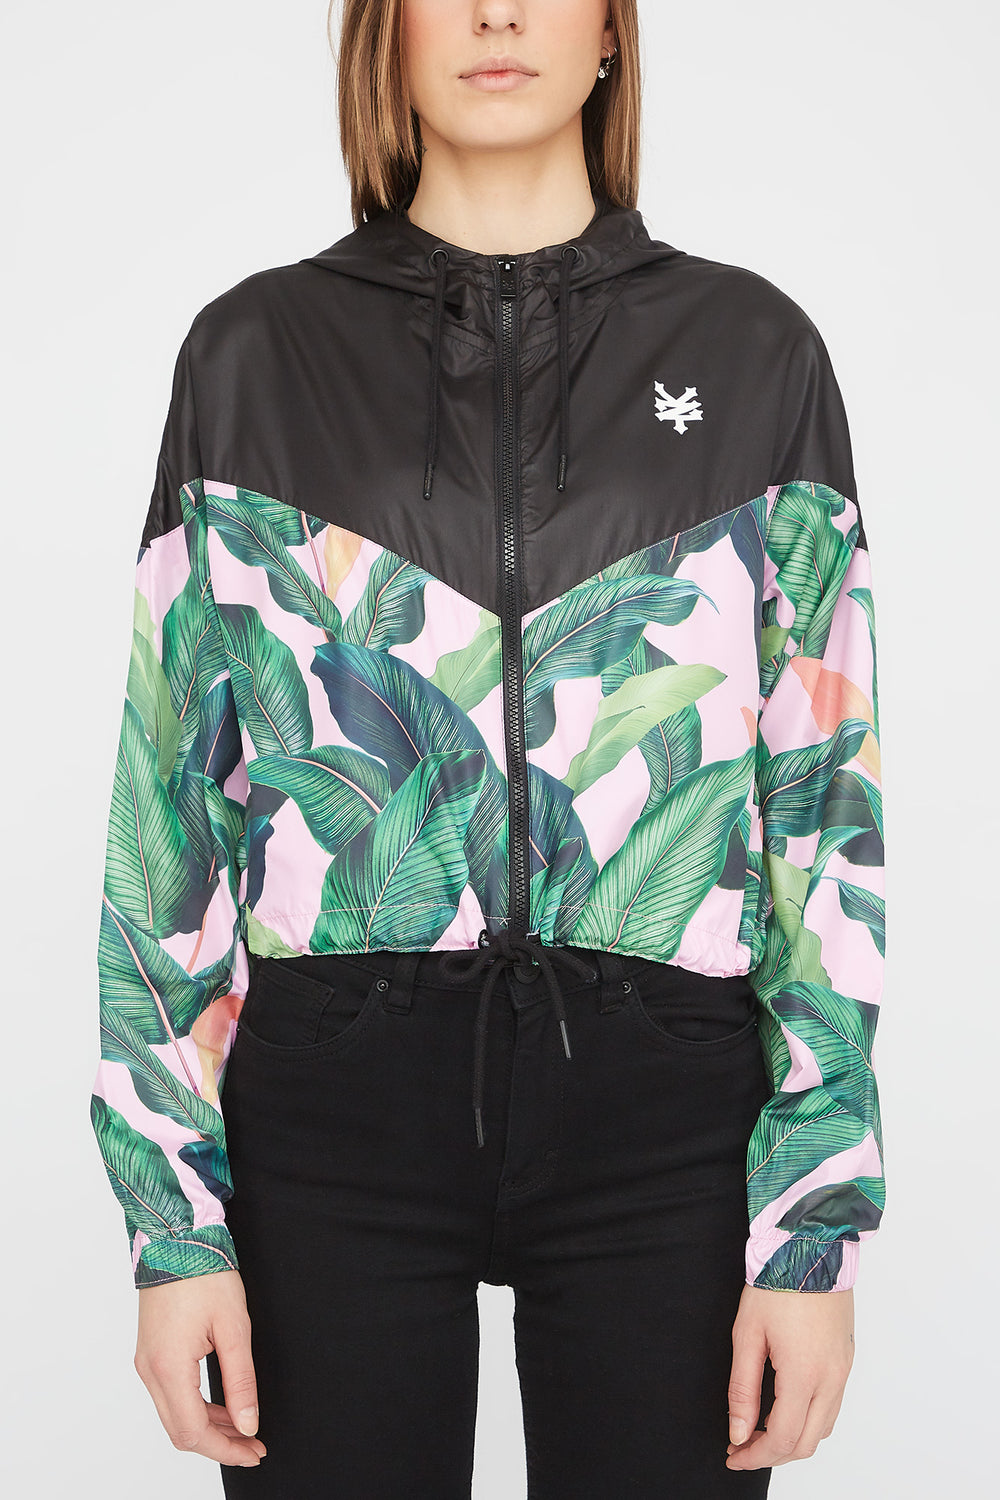 Zoo York Womens Tropical Jacket Solid Black